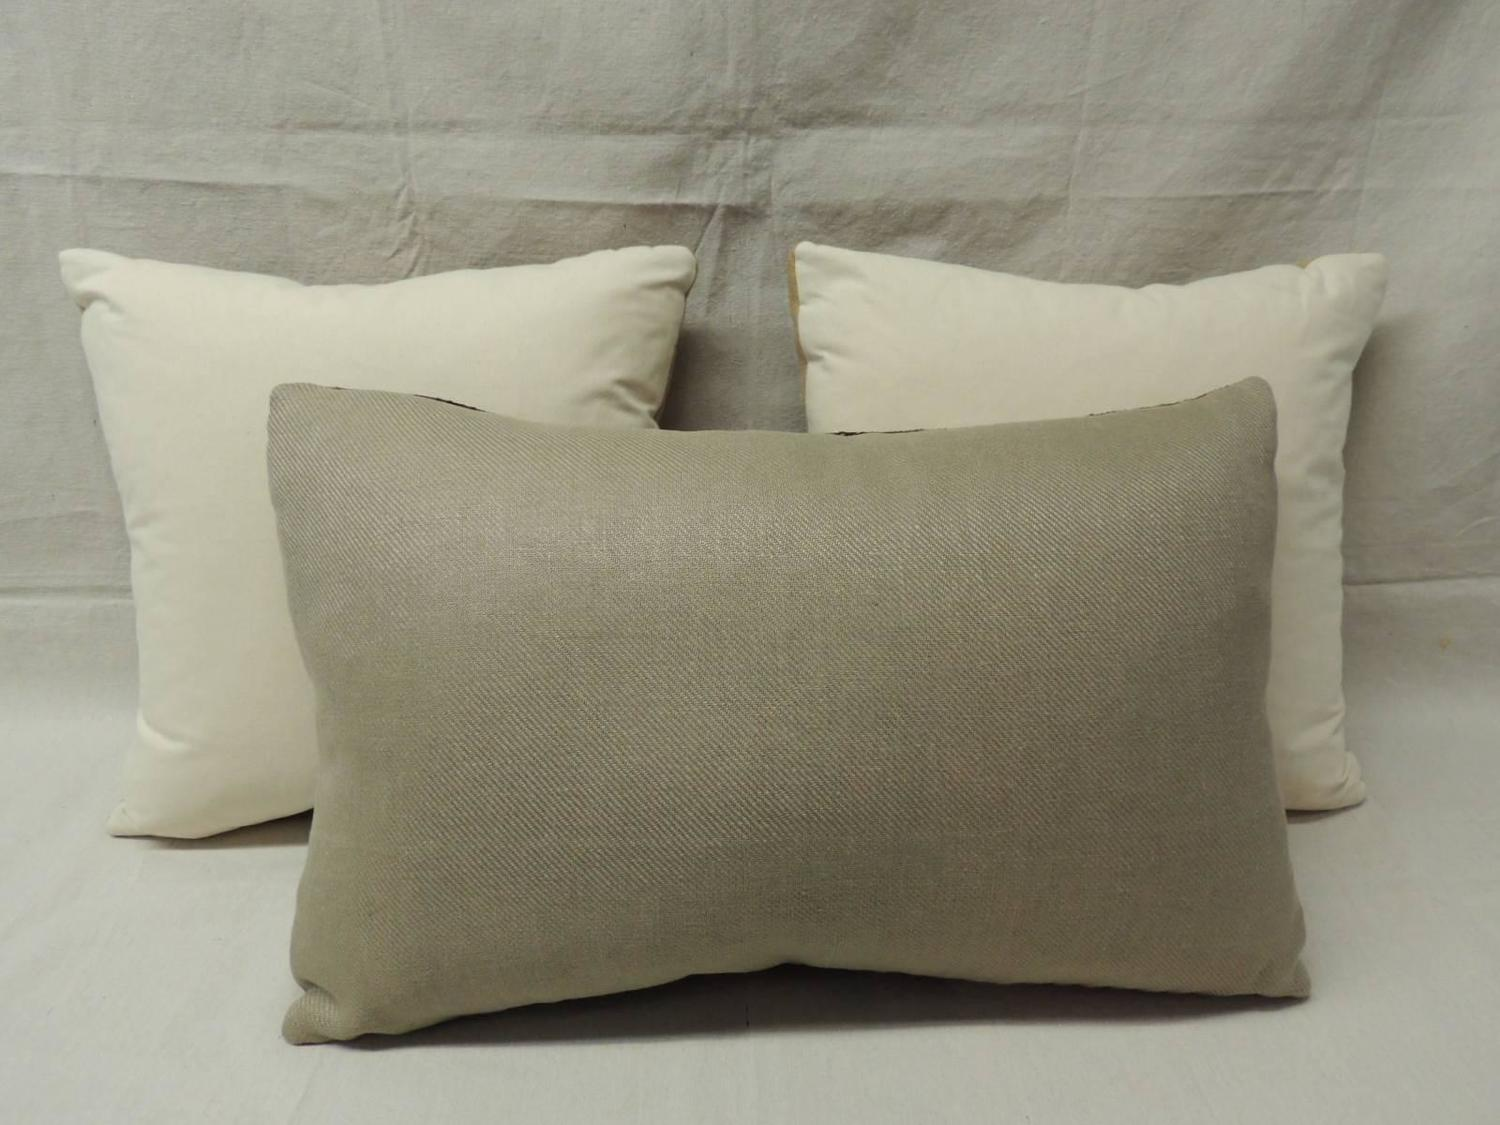 Tan and Brown Weave Textured Decorative Pillows For Sale at 1stdibs